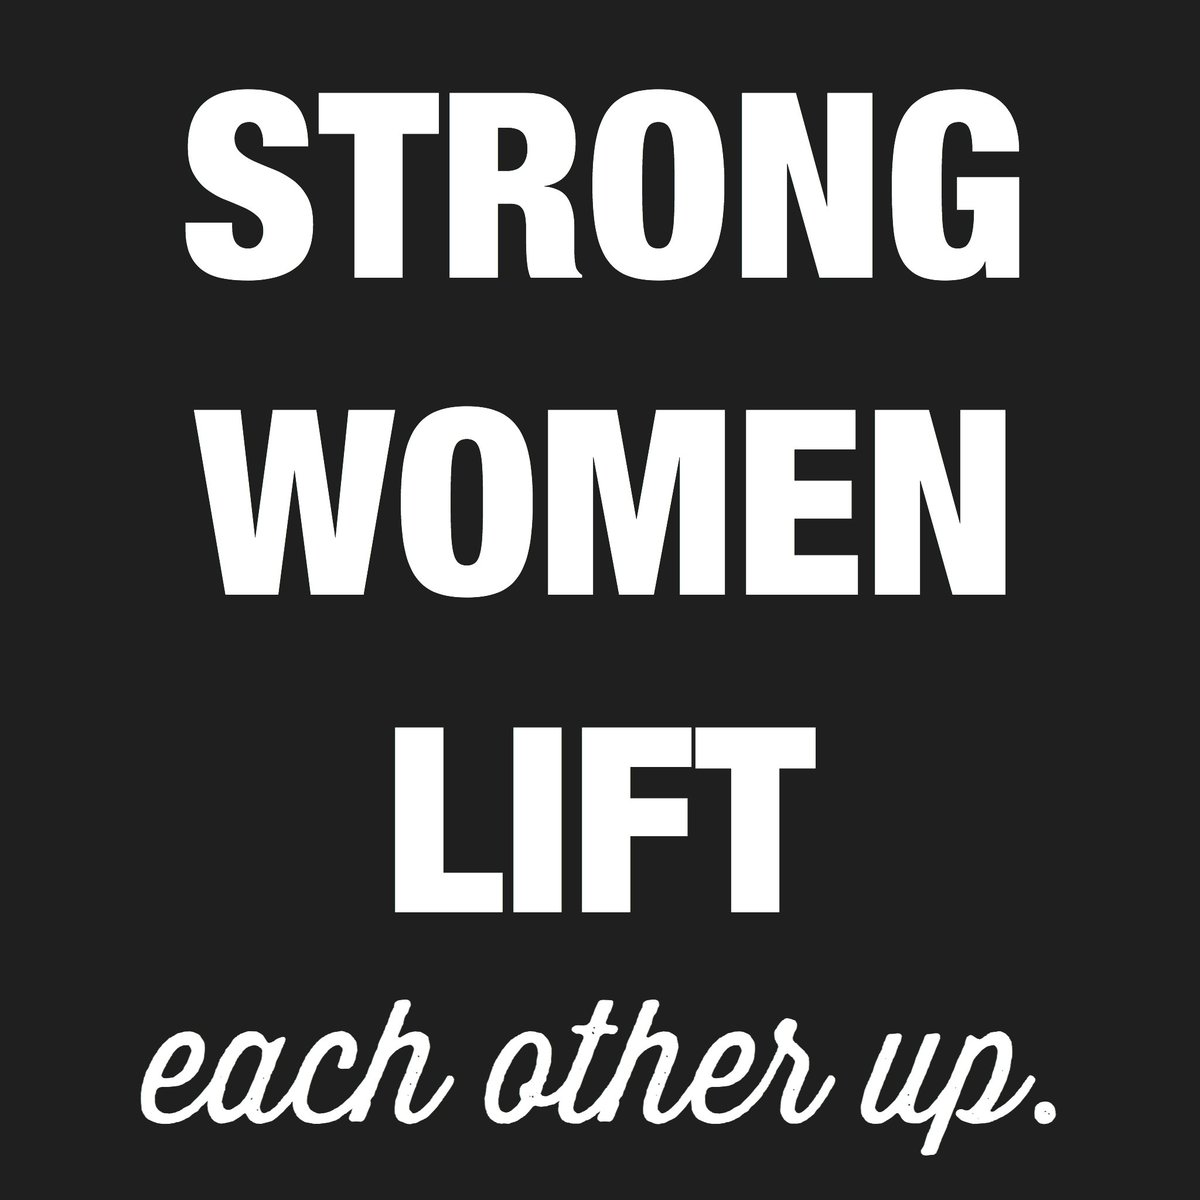 Support each other, ladies. https://t.co/lt1tA8DwSB